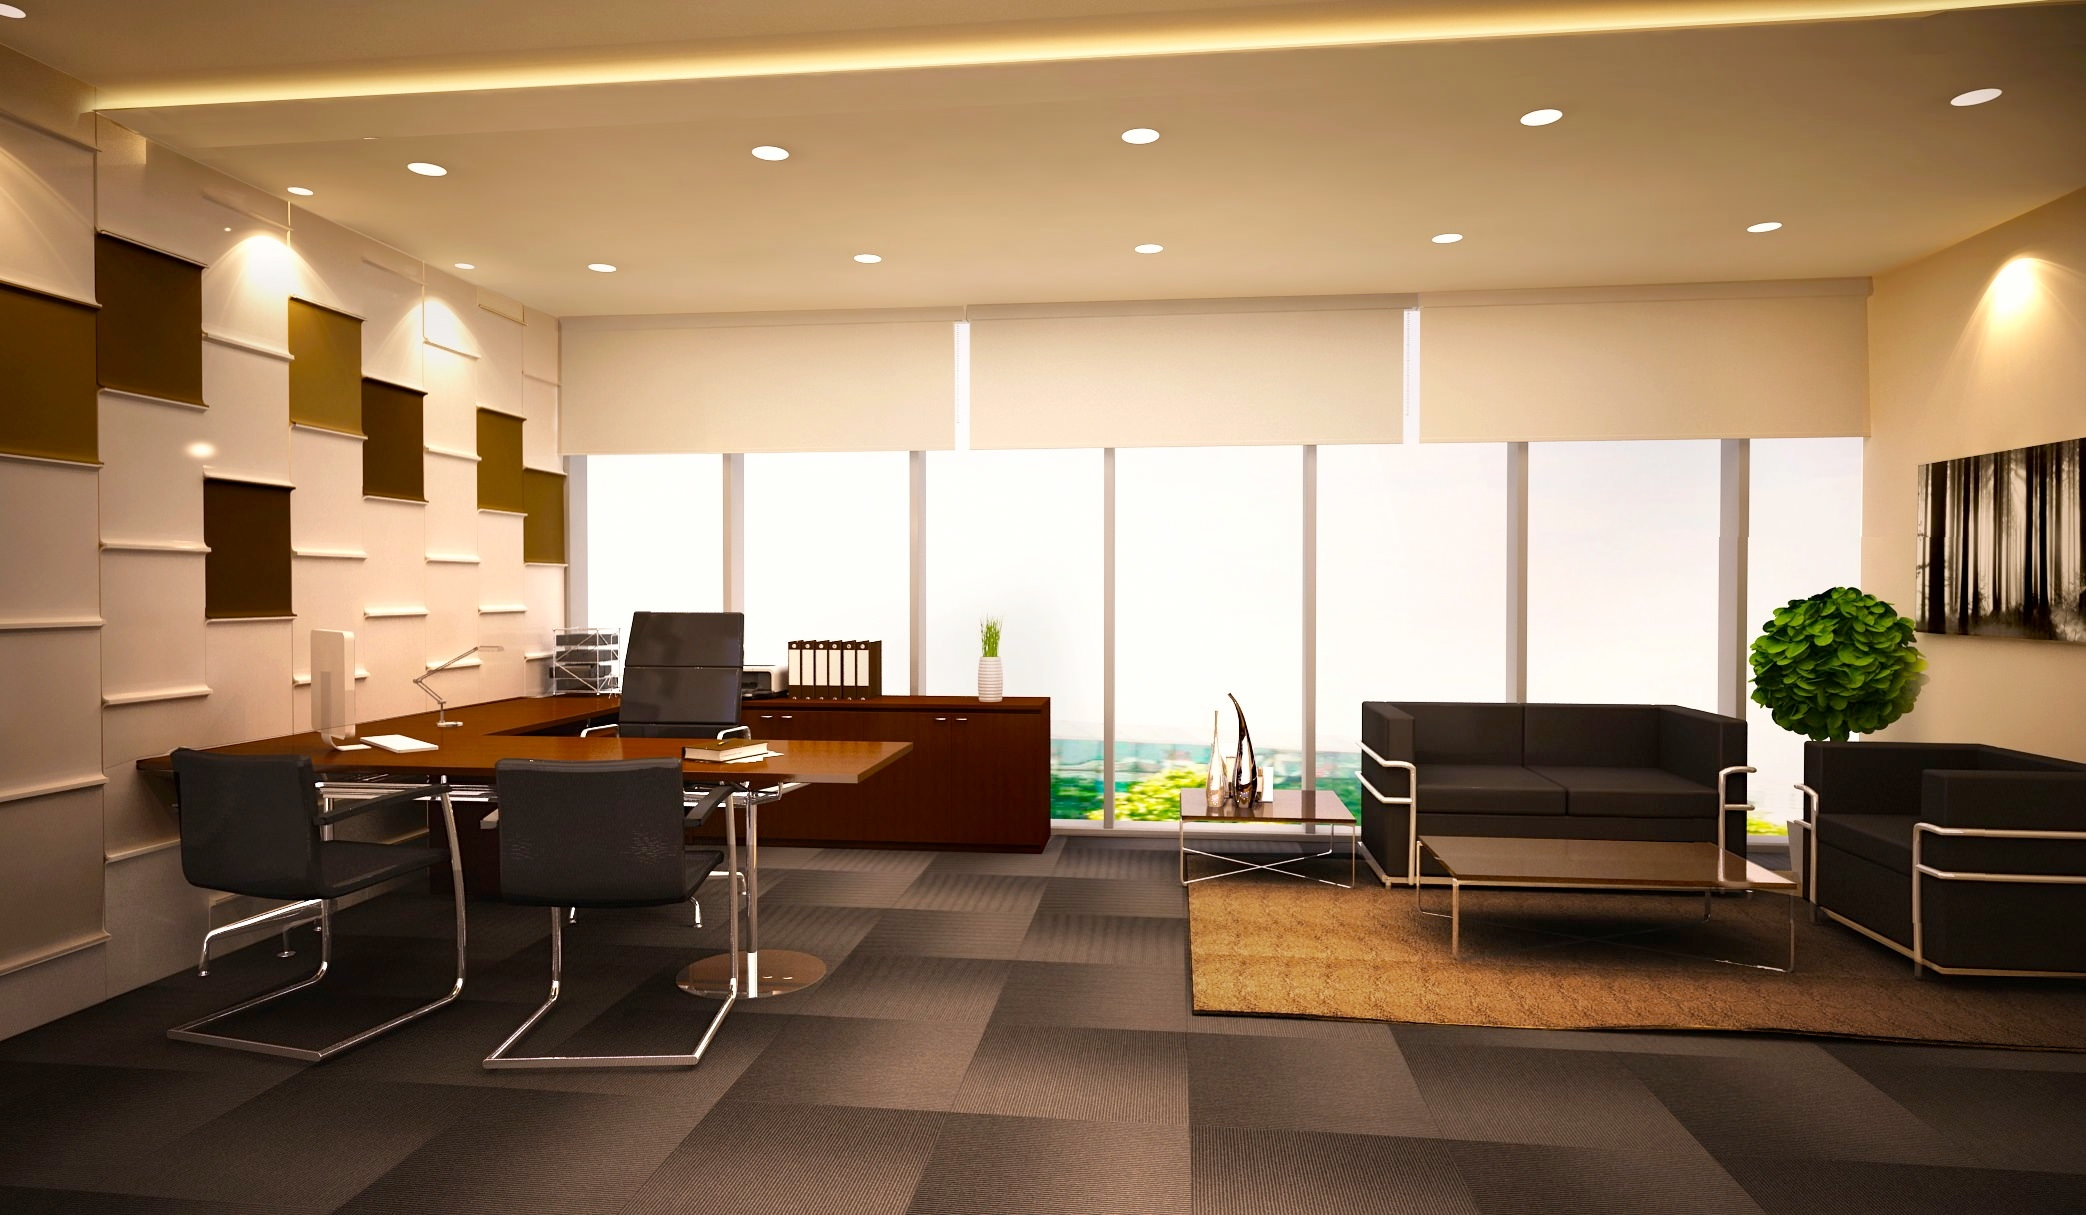 19 Minimalist Office Designs Decorating Ideas  Design Trends